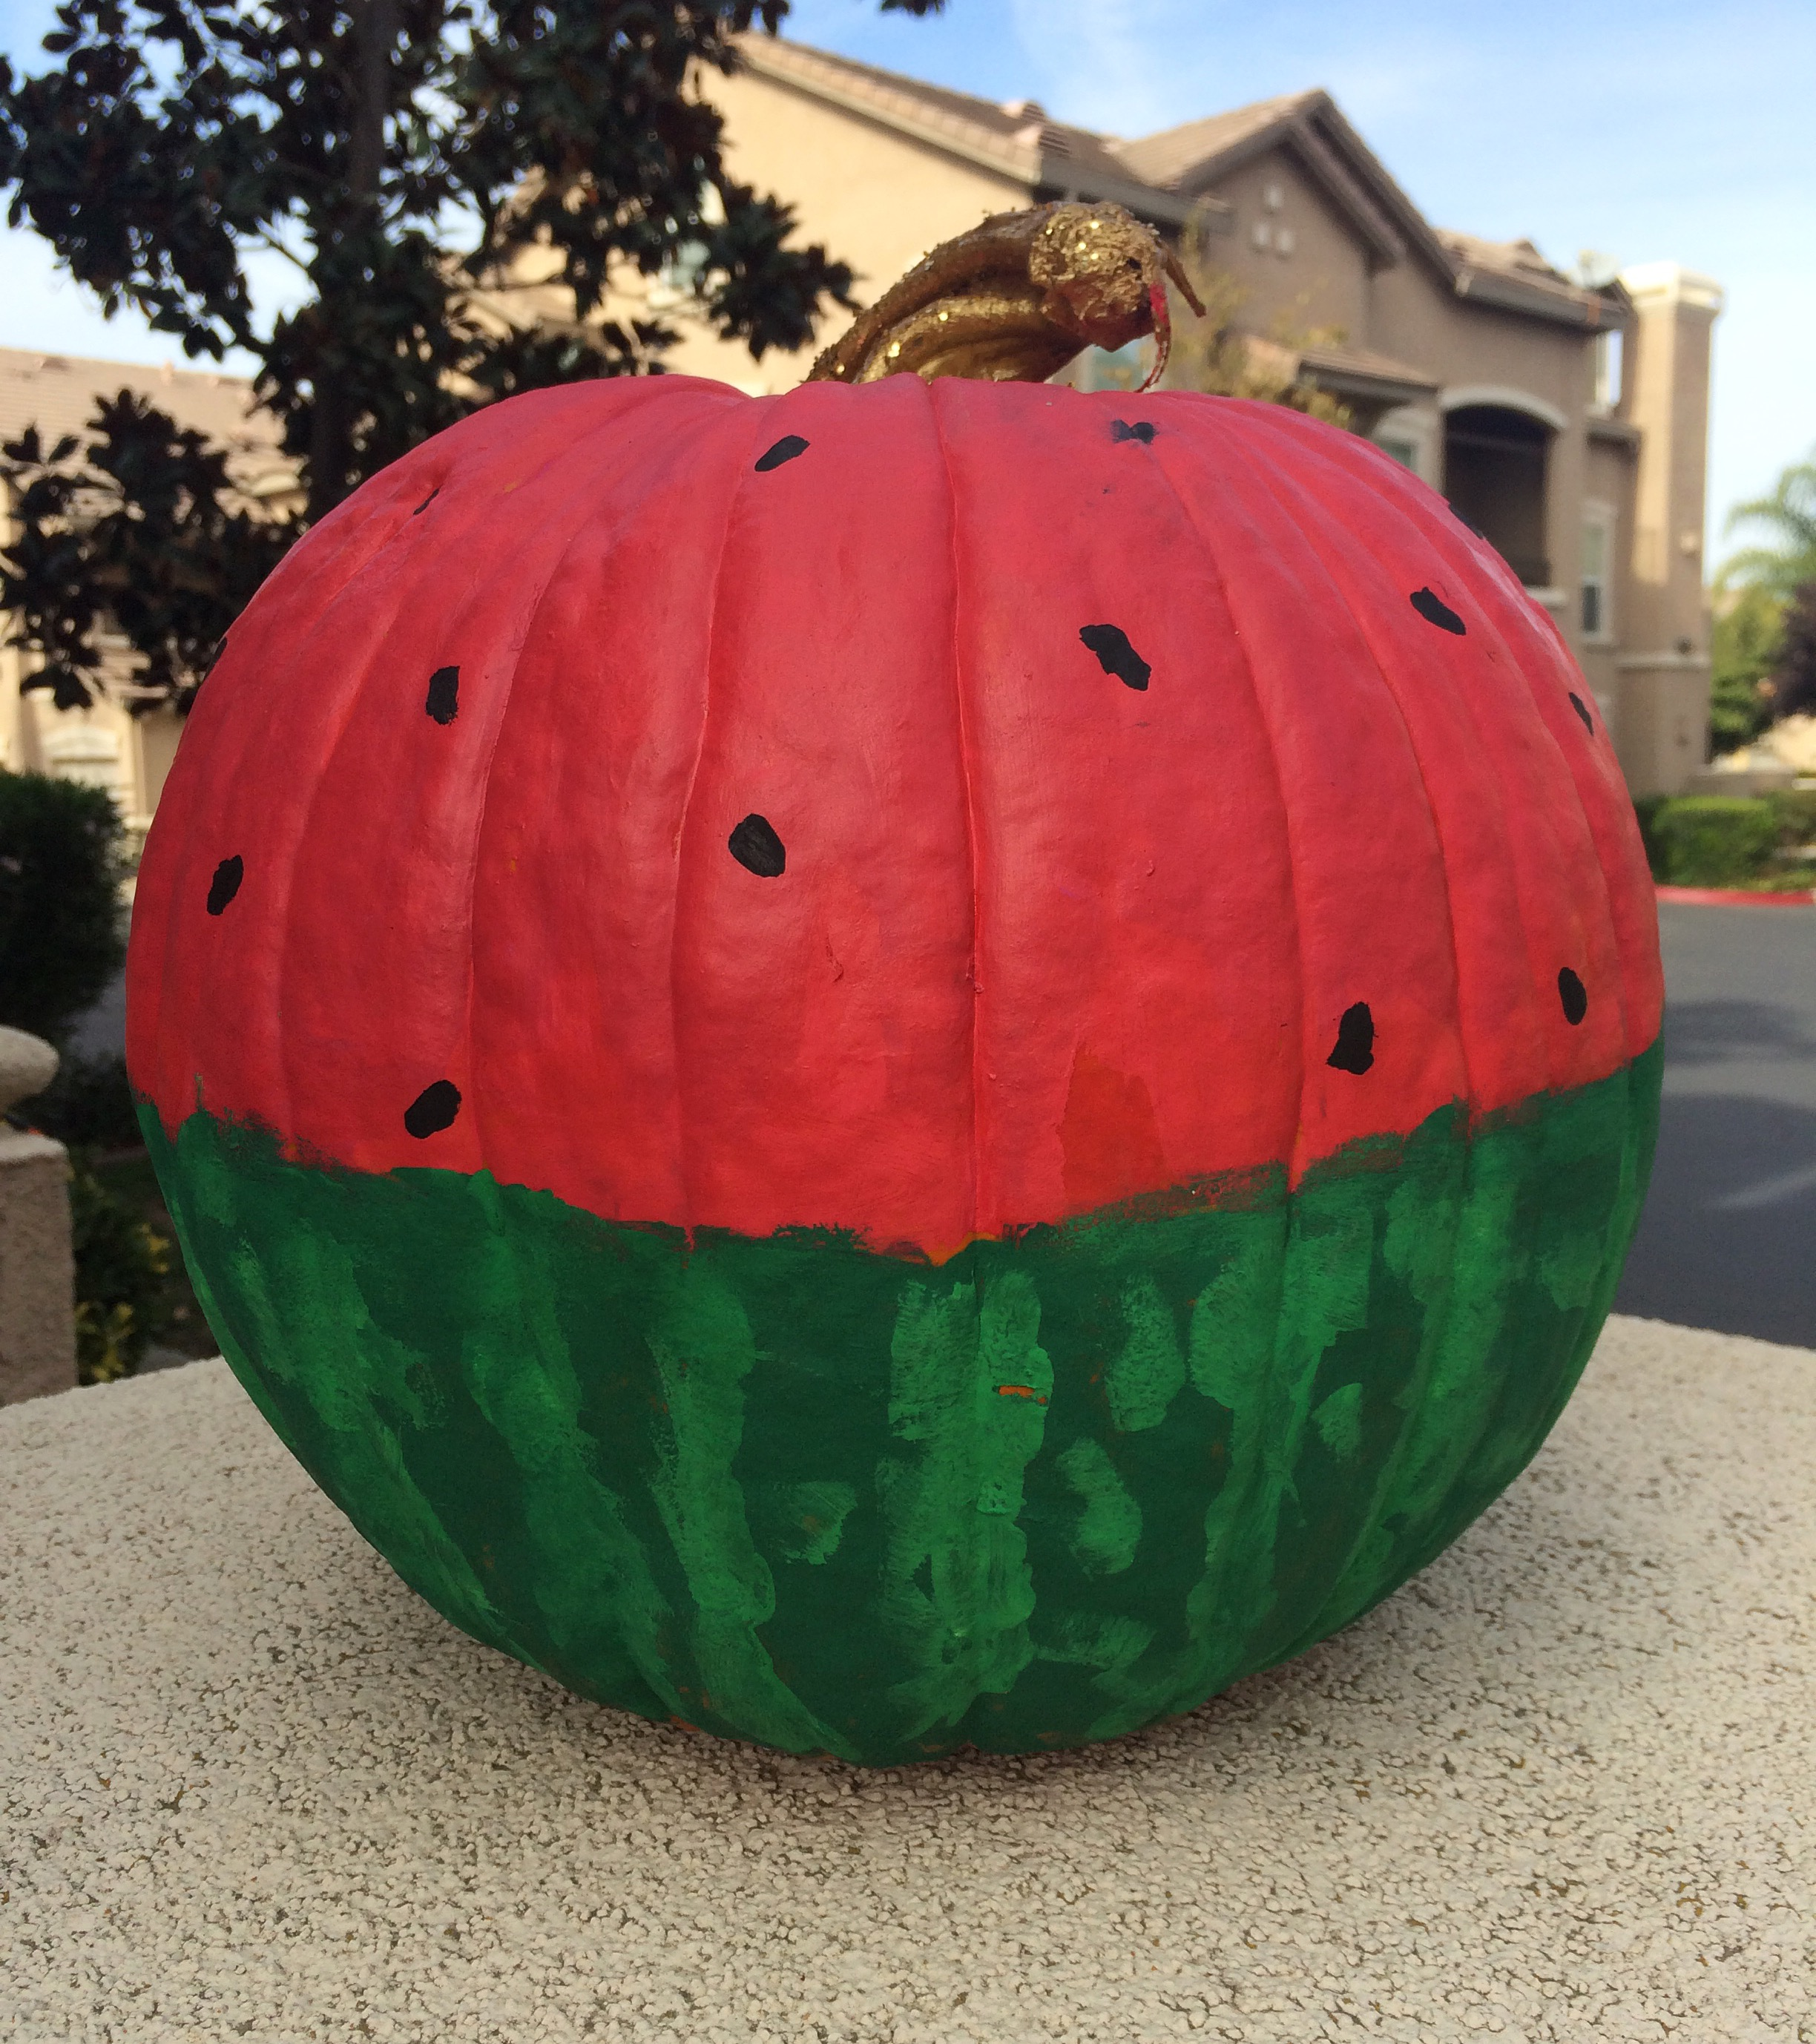 My watermelon pumpkin. I want to keep it forever and ever.